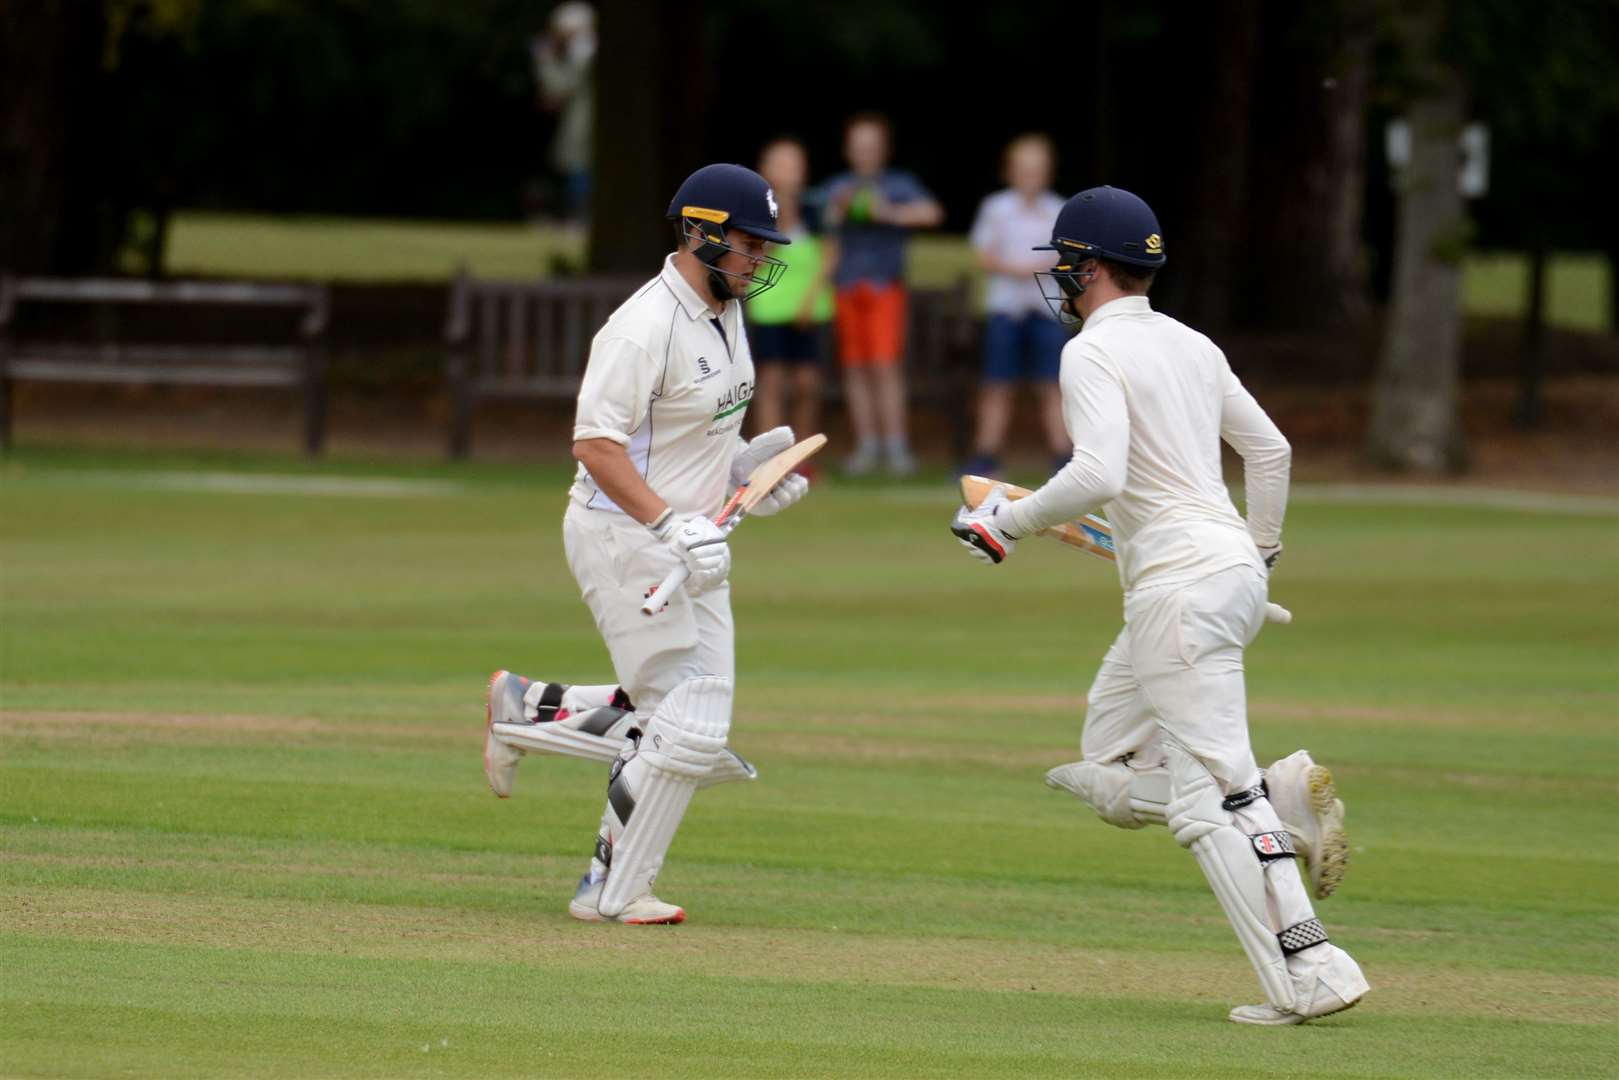 Reece Hussain and Tommy Burslem grab a single against Potters Bar. Picture: Vikki Lince